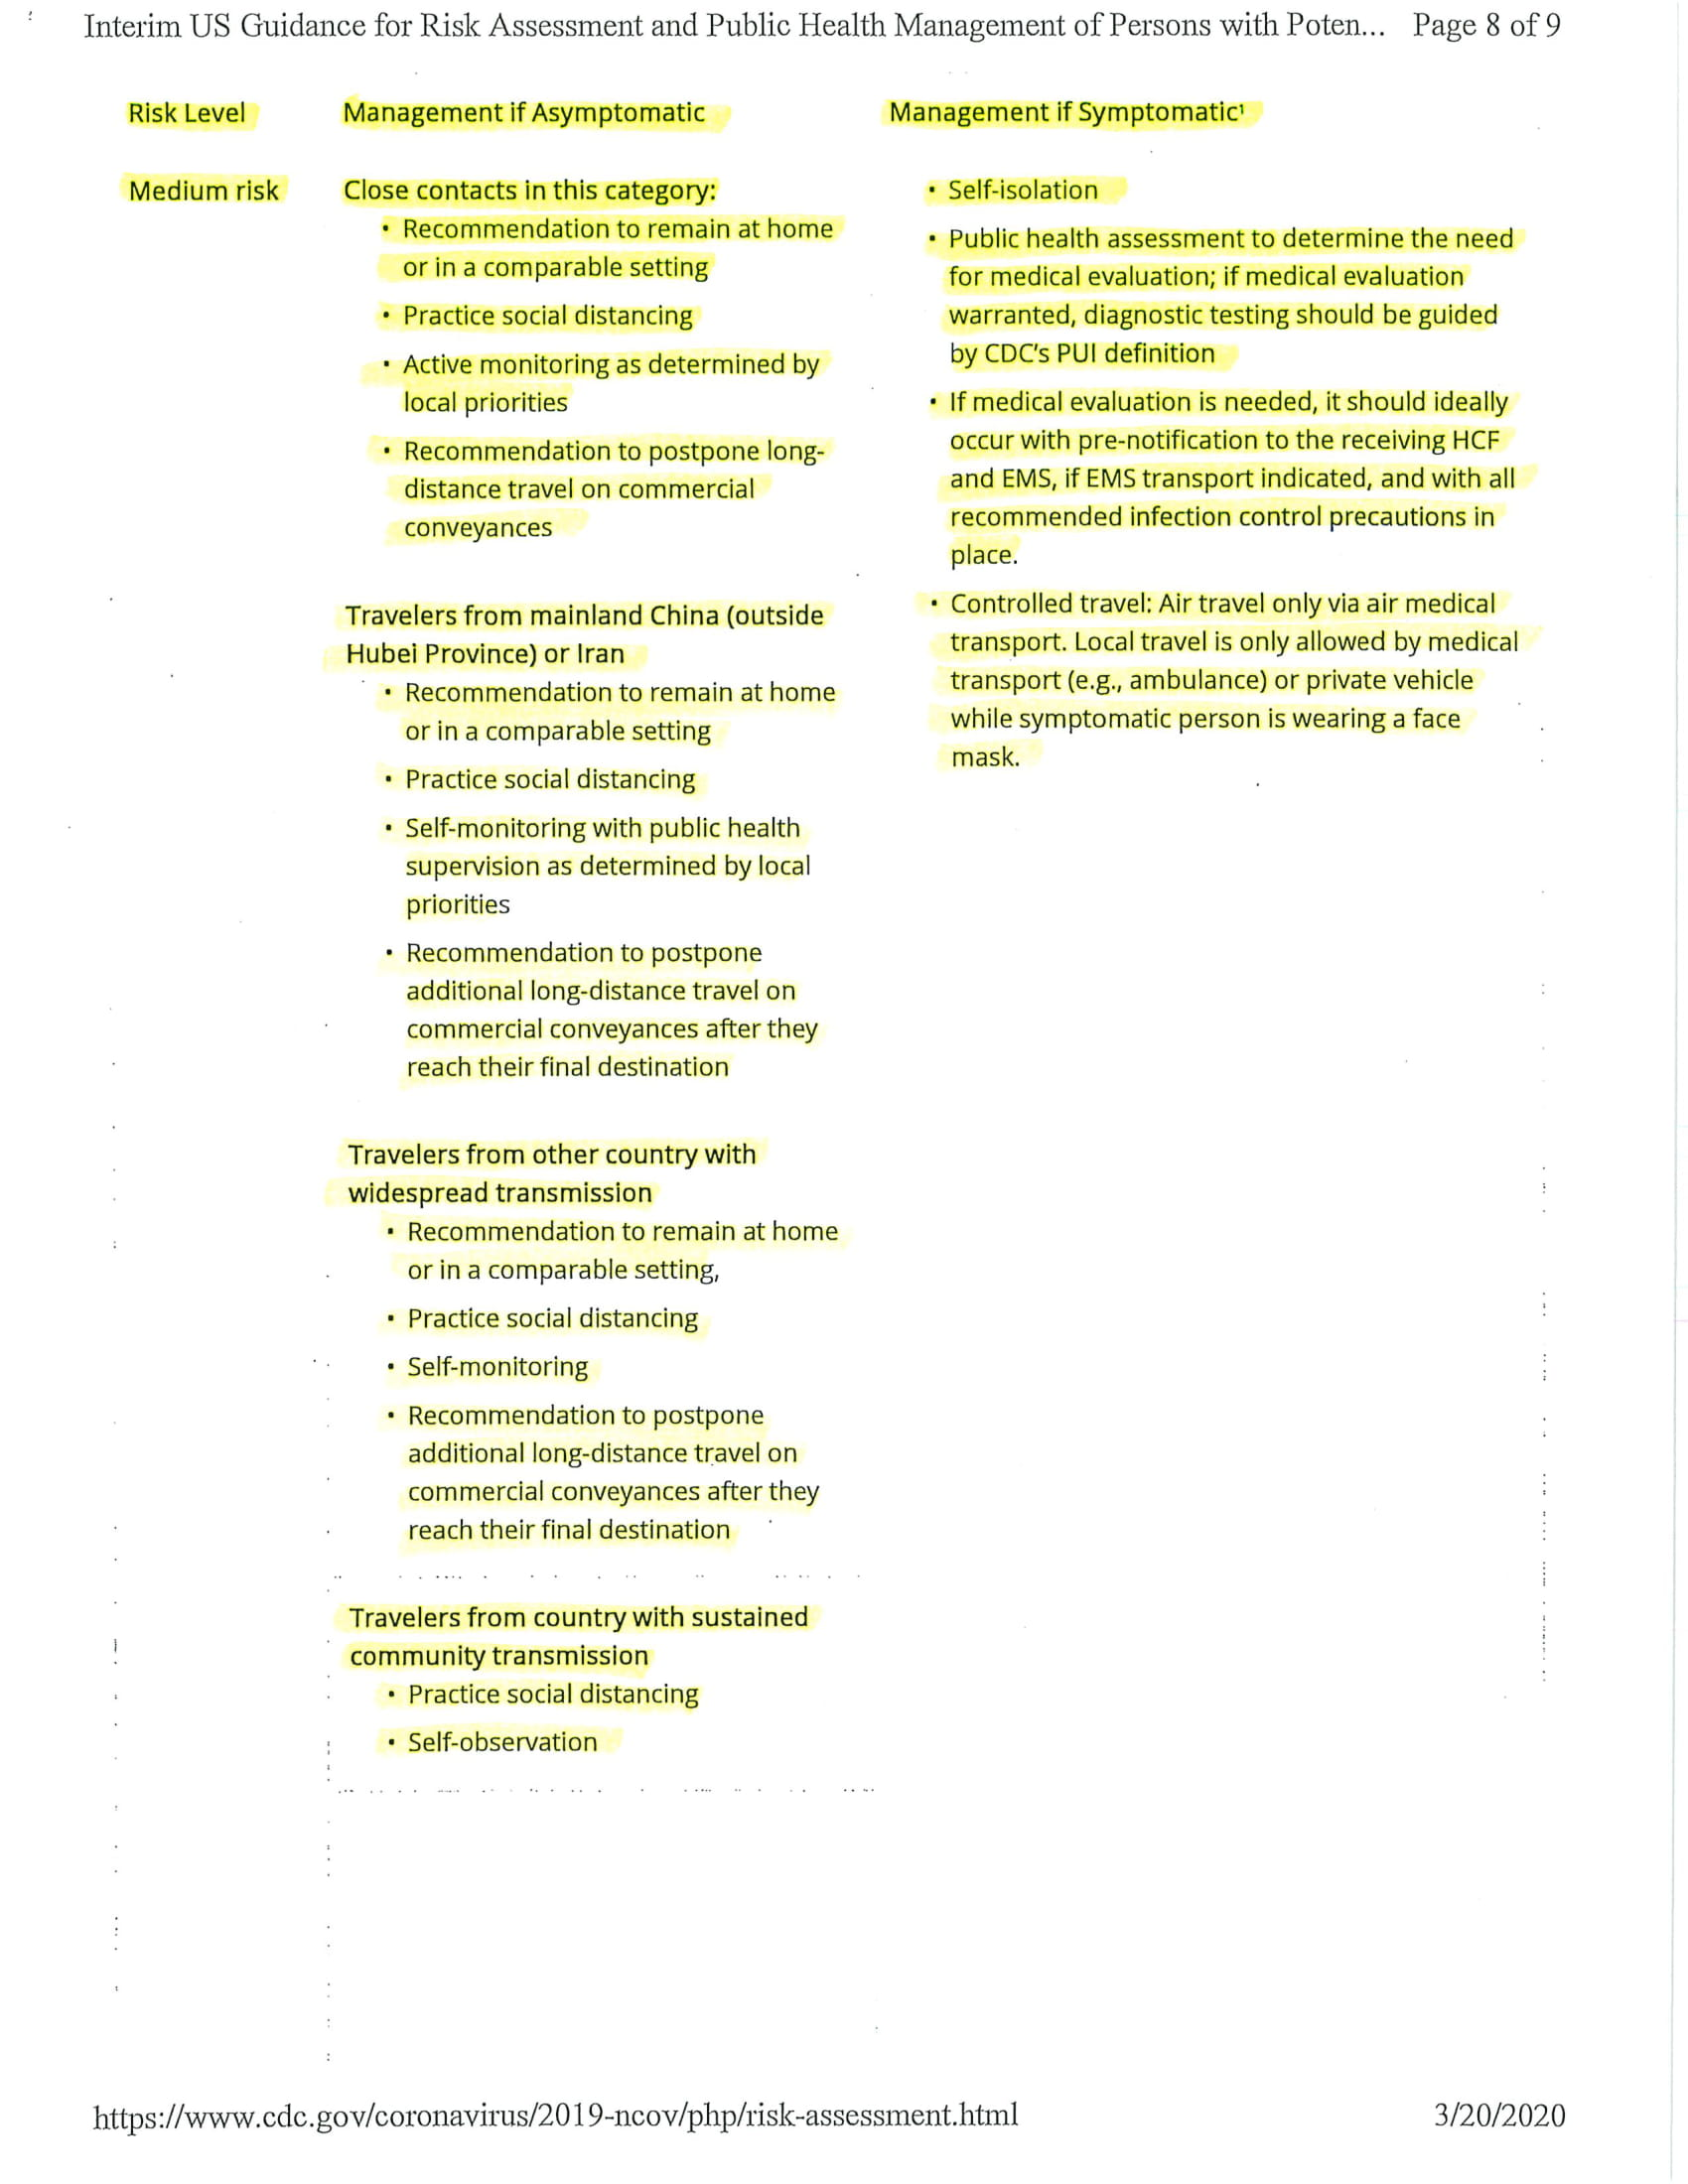 Interim Guidance for Risk Assessment and Public Health Management